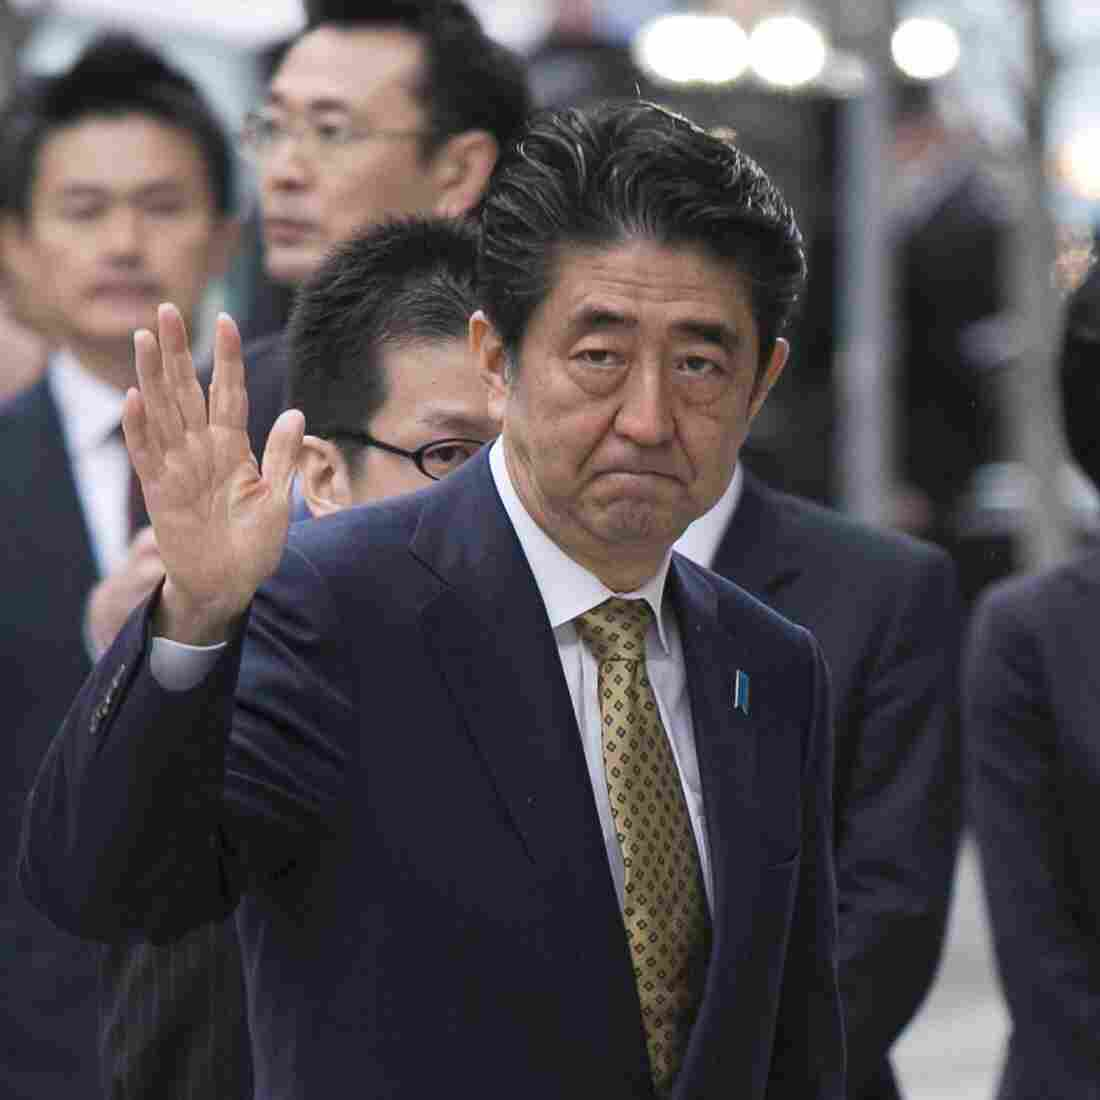 The Past Haunts The Present For Japan's Shinzo Abe